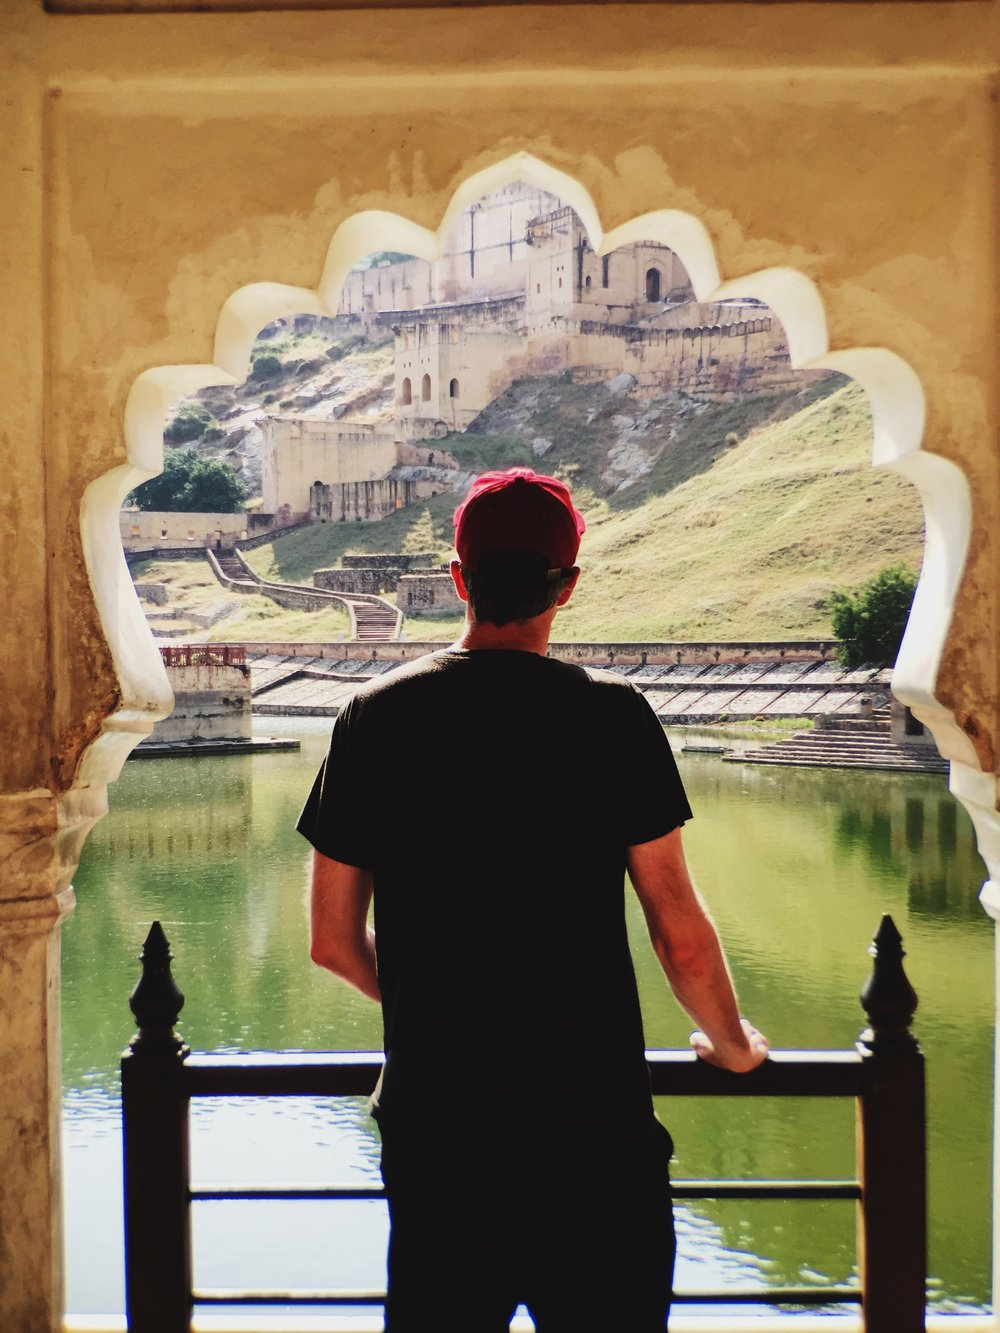 kyle checking out amber fort just outside of jaipur in india